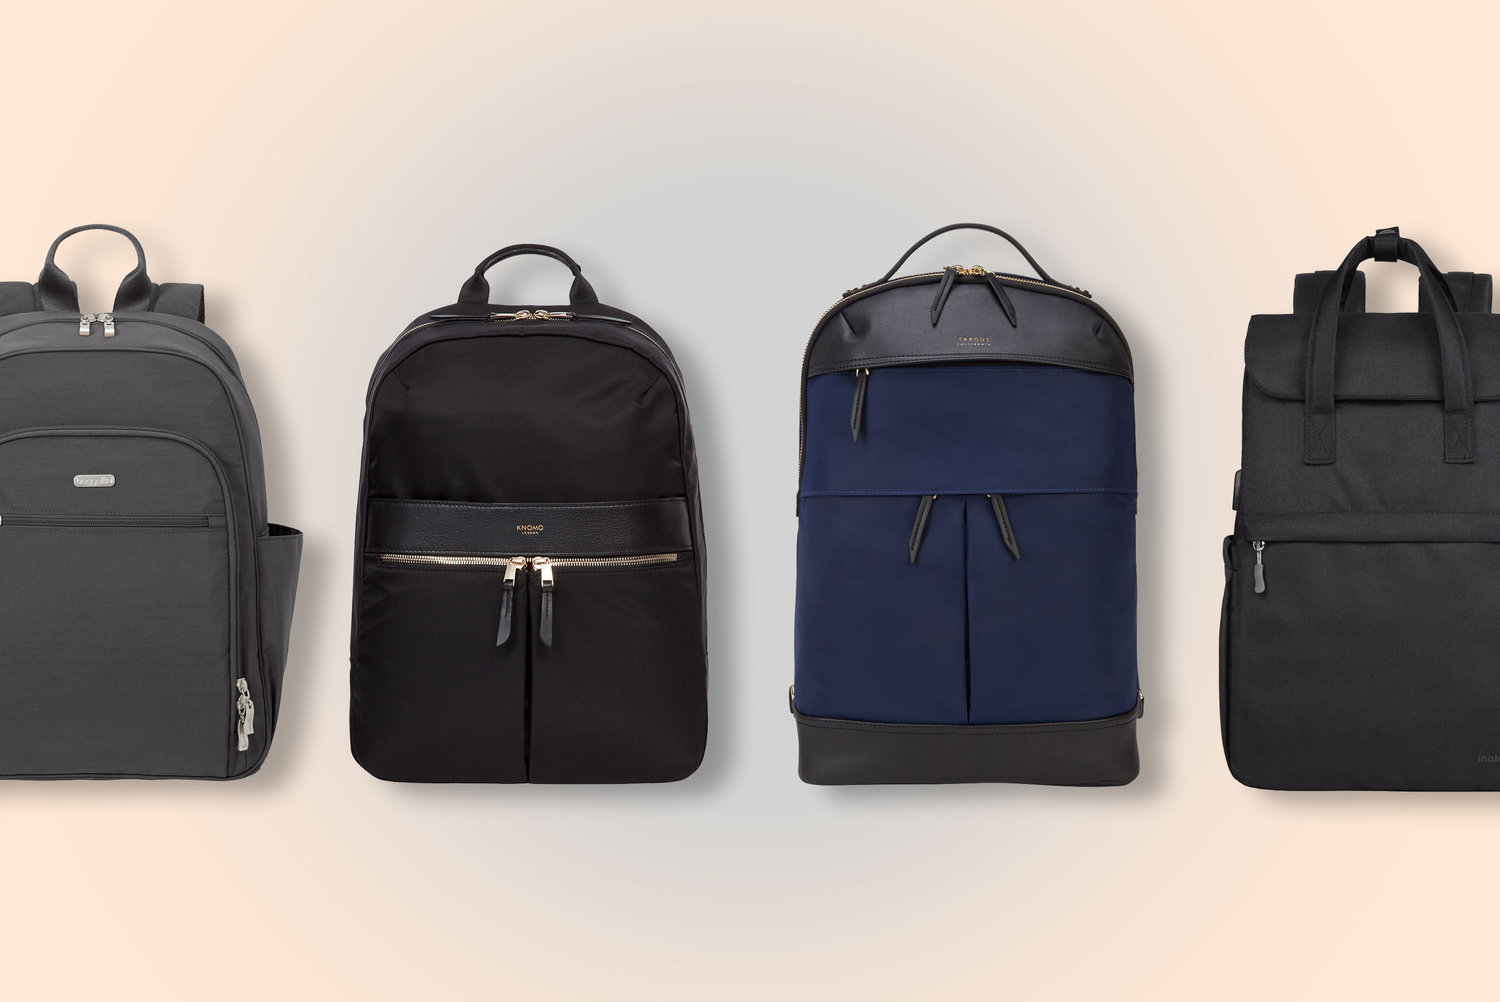 10 Best Women S Backpacks For Work That Are Sophisticated And Smart Backpackies